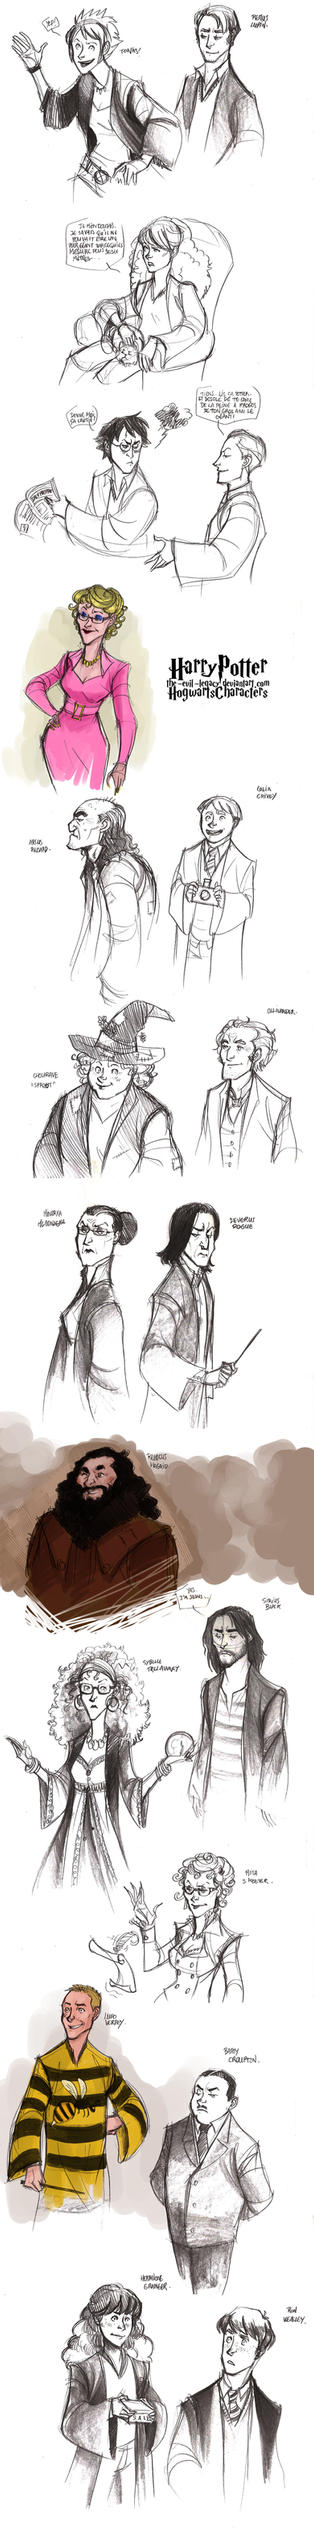 HP - Hogwart's characters by the-evil-legacy